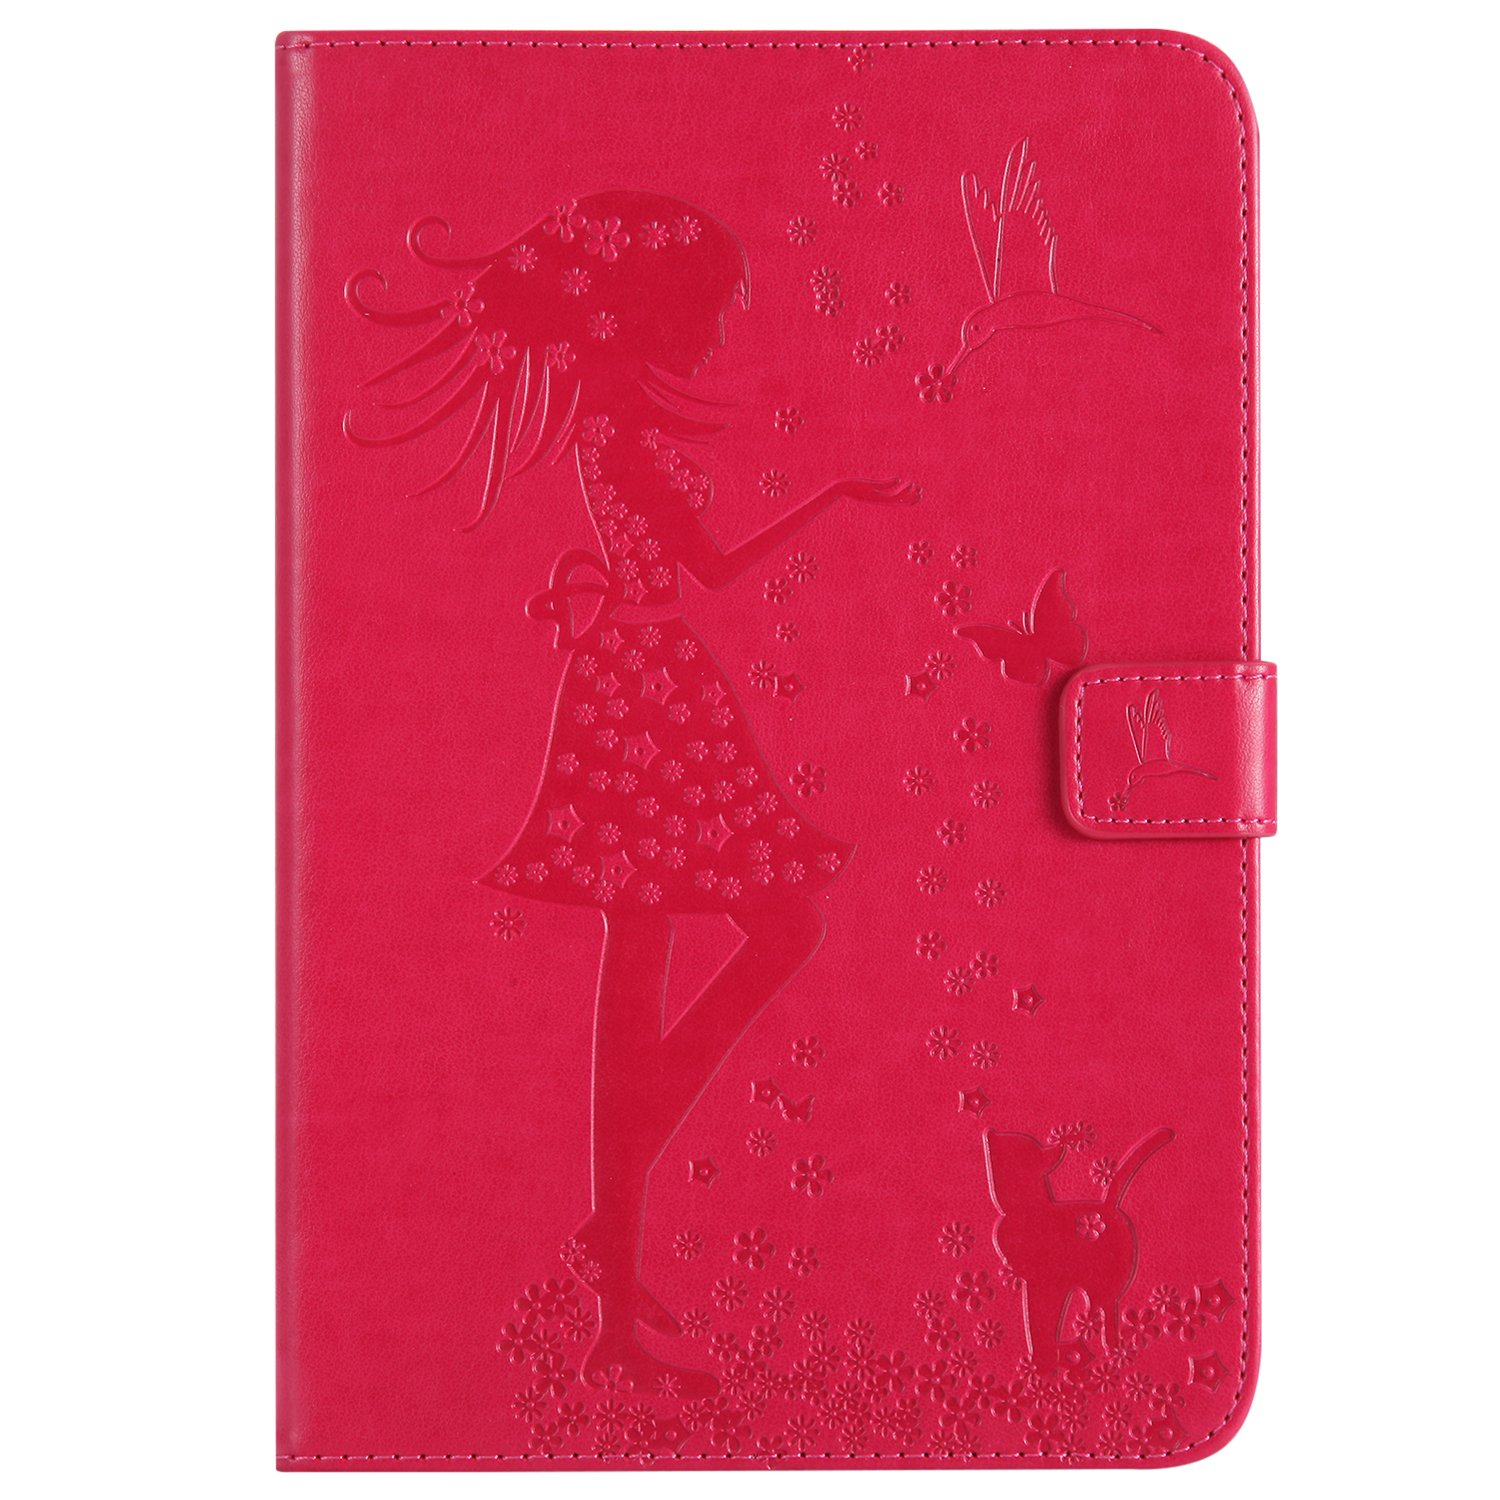 Bear Village Case for Samsung Galaxy Tab a 8.0 Inch, Premium Full Body Protective Cover, Slim Leather Smart Magnetic Case with Multiangle Viewing Stand, Red by Bear Village